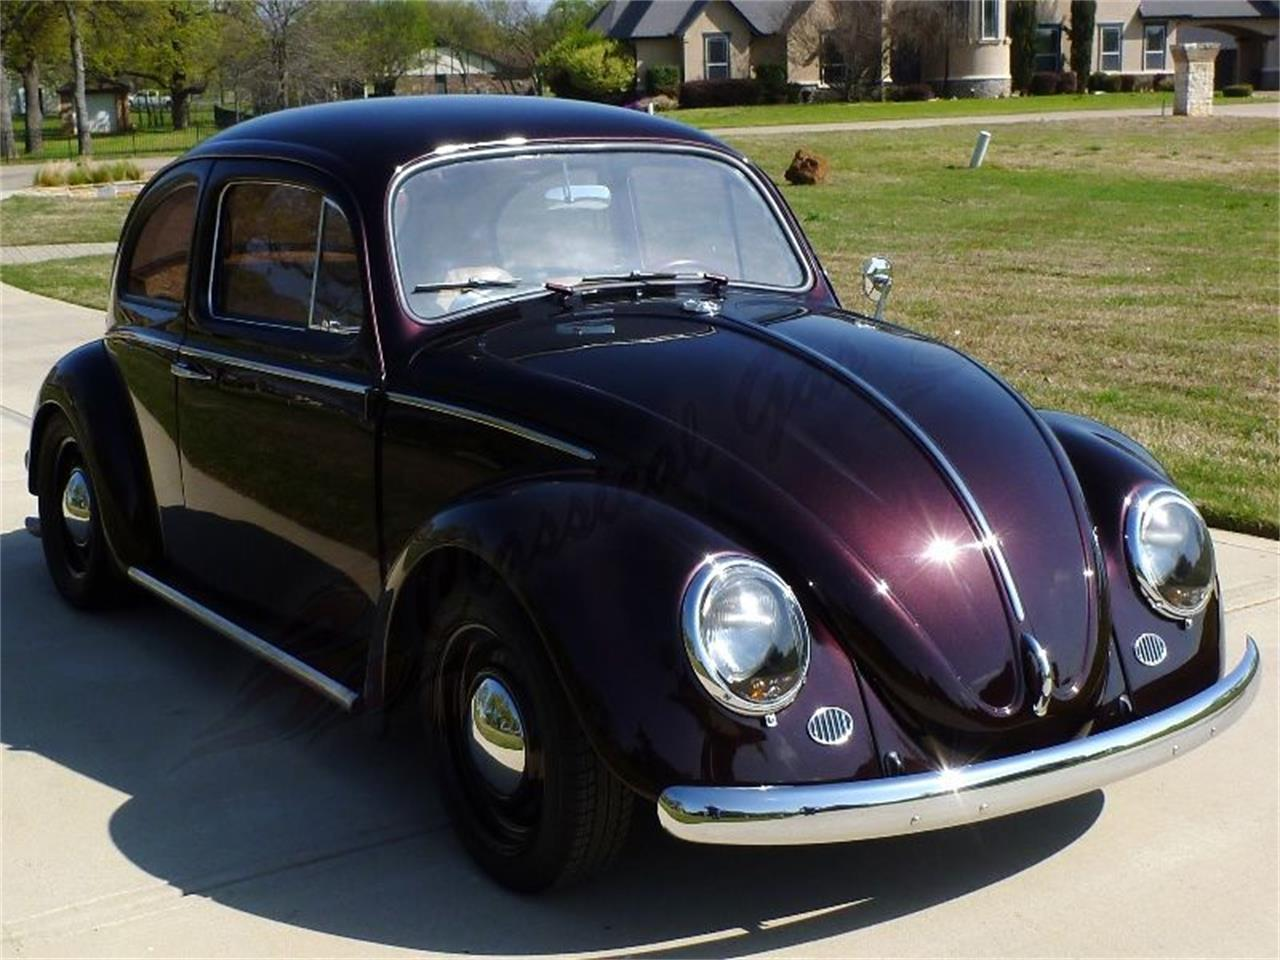 For Sale: 1964 Volkswagen Beetle in Arlington, Texas